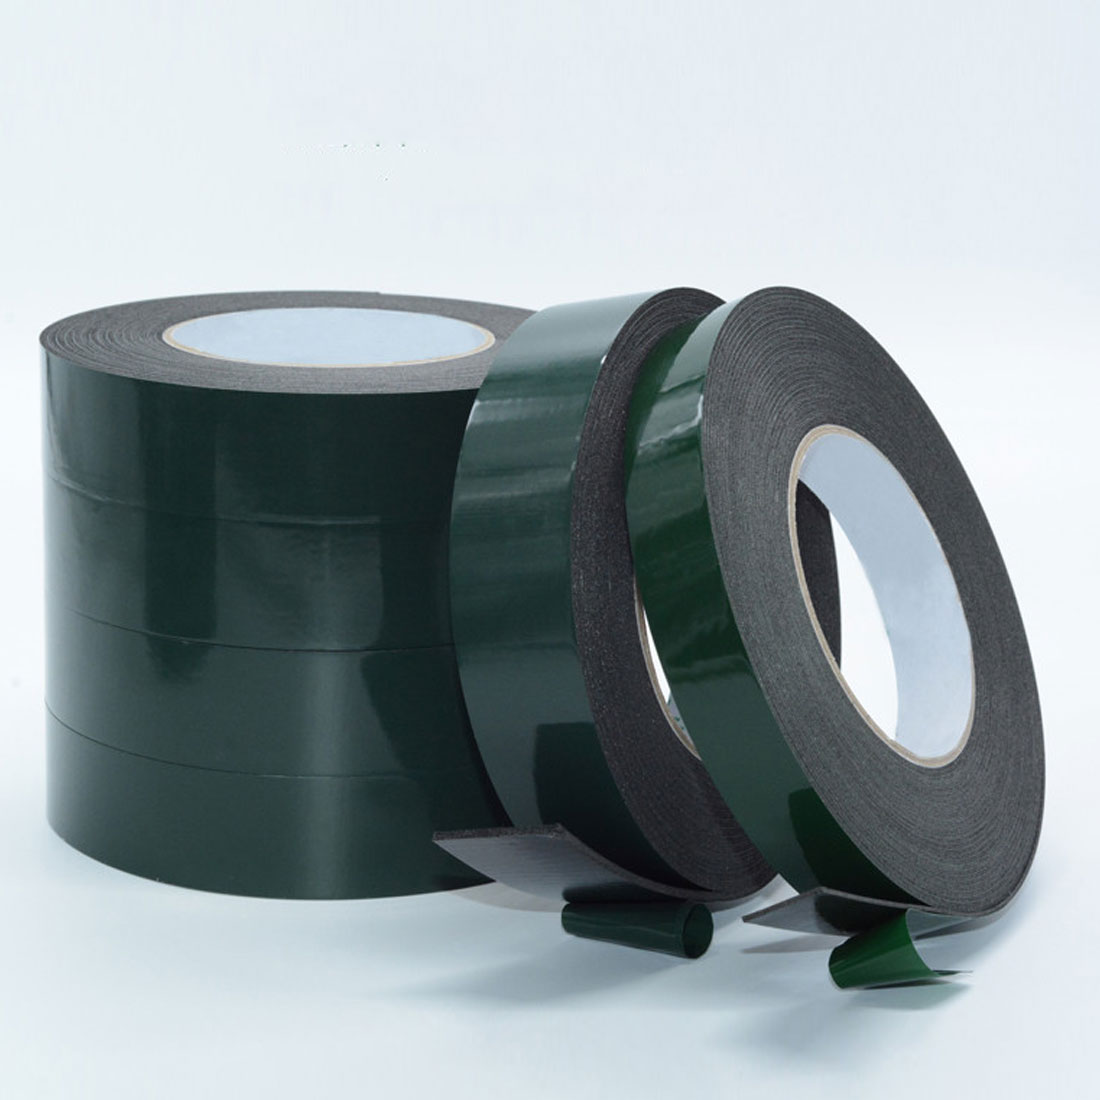 Strong Adhesive Waterproof Double Sided Tape 10m Length 10mm Width Foam Green Tape Trim Home Car 10mm 20m 0 5mm double sided black sticky sponge foam tape gasket for android machine mainboard tablet panel seal dust proof